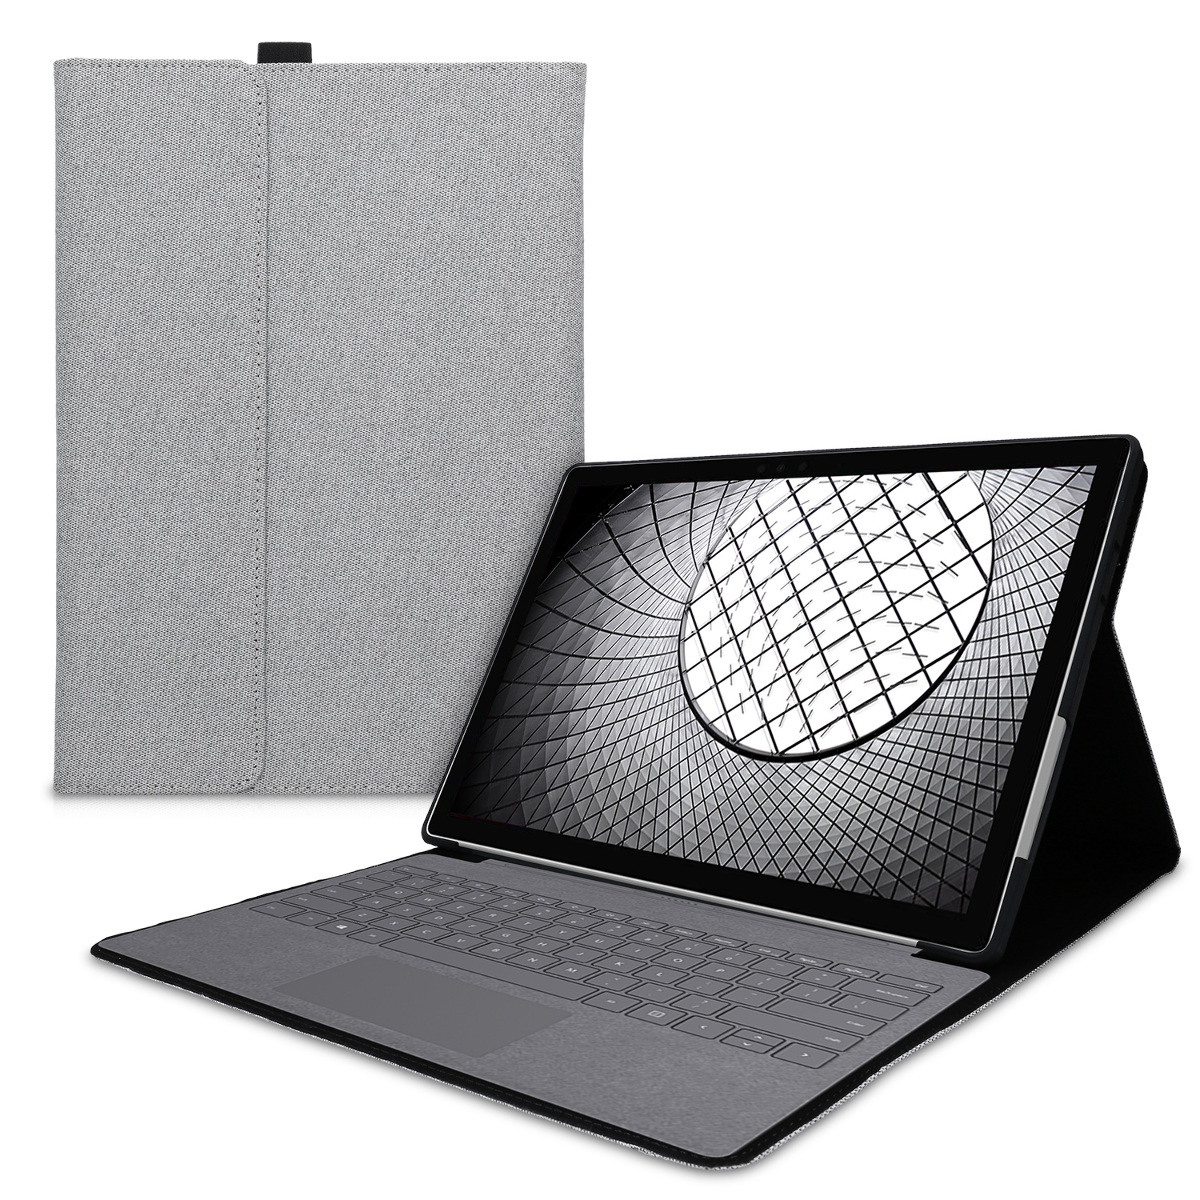 KW Θήκη Flip Microsoft Surface Pro 7 - Built-In Stand and Compatible with Type Cover Keyboard - Grey (50977.01)